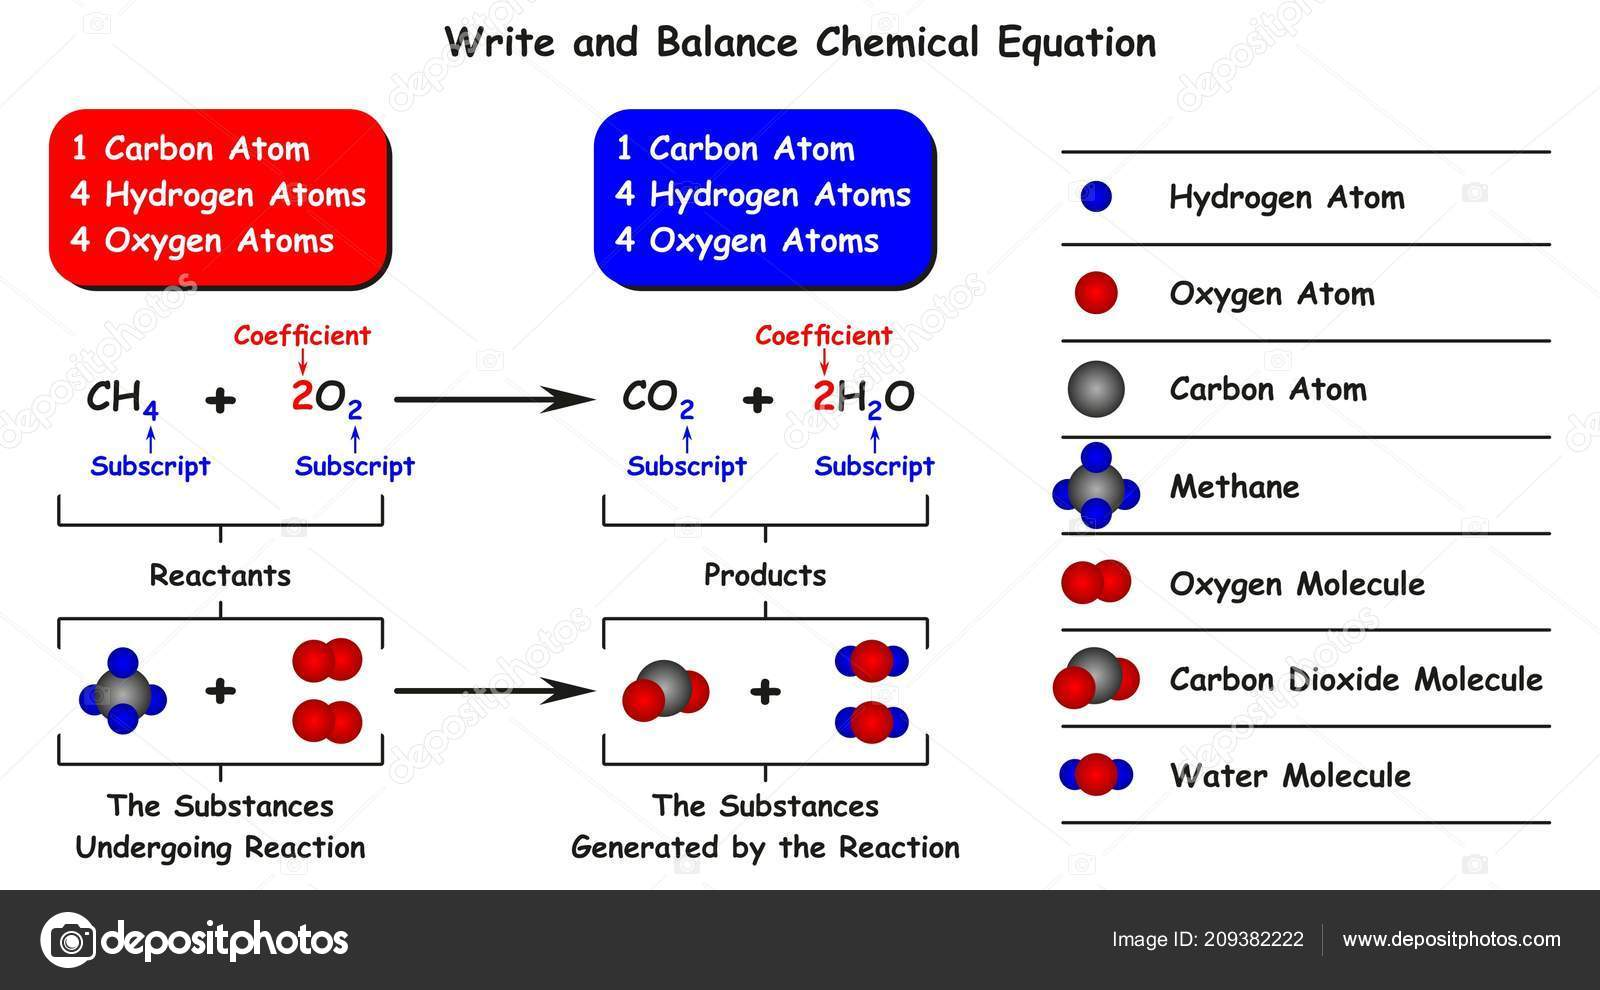 Write A Balanced Chemical Equation For The Combustion Of